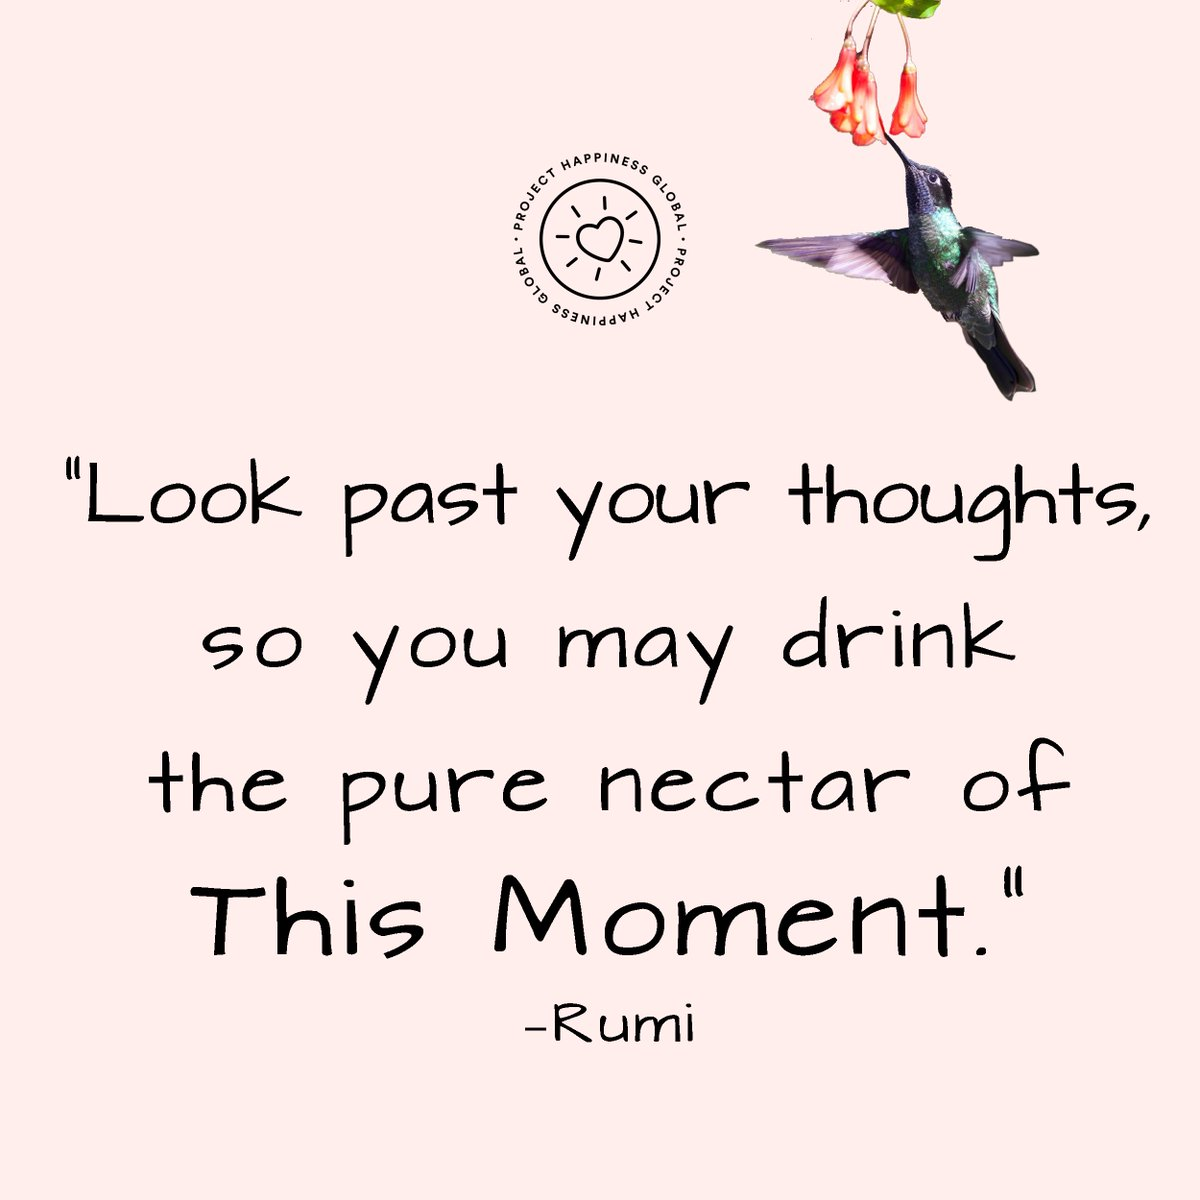 &quot;Look past your thoughts, so you may drink the pure nectar of This Moment.&quot; –Rumi  #projecthappiness #mindfulness<br>http://pic.twitter.com/D3s20Q9ii1